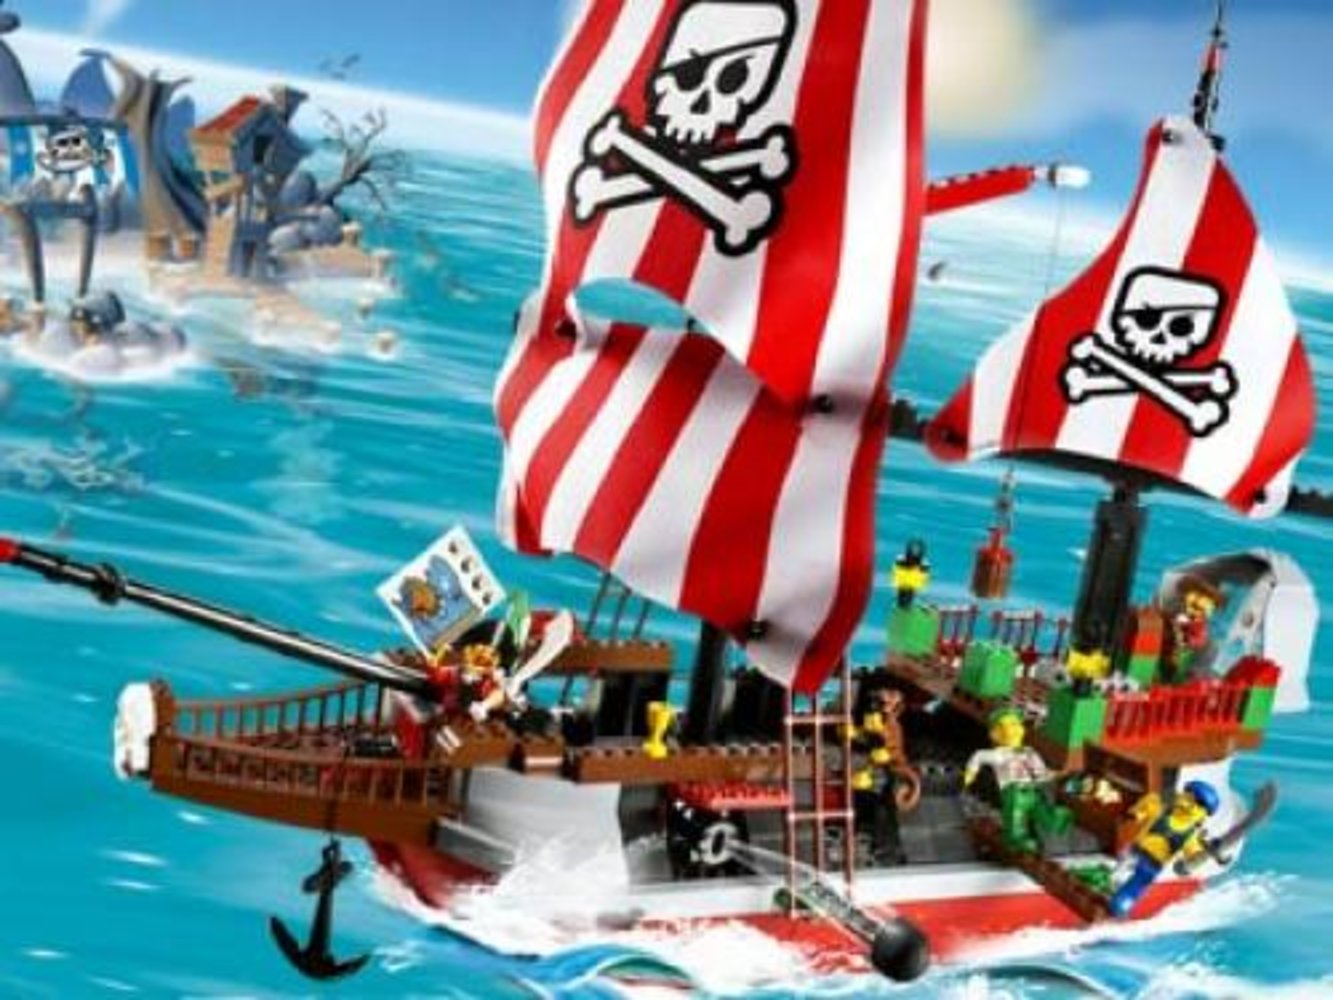 Captain Redbeard's Pirate Ship - Limited Edition with Motor